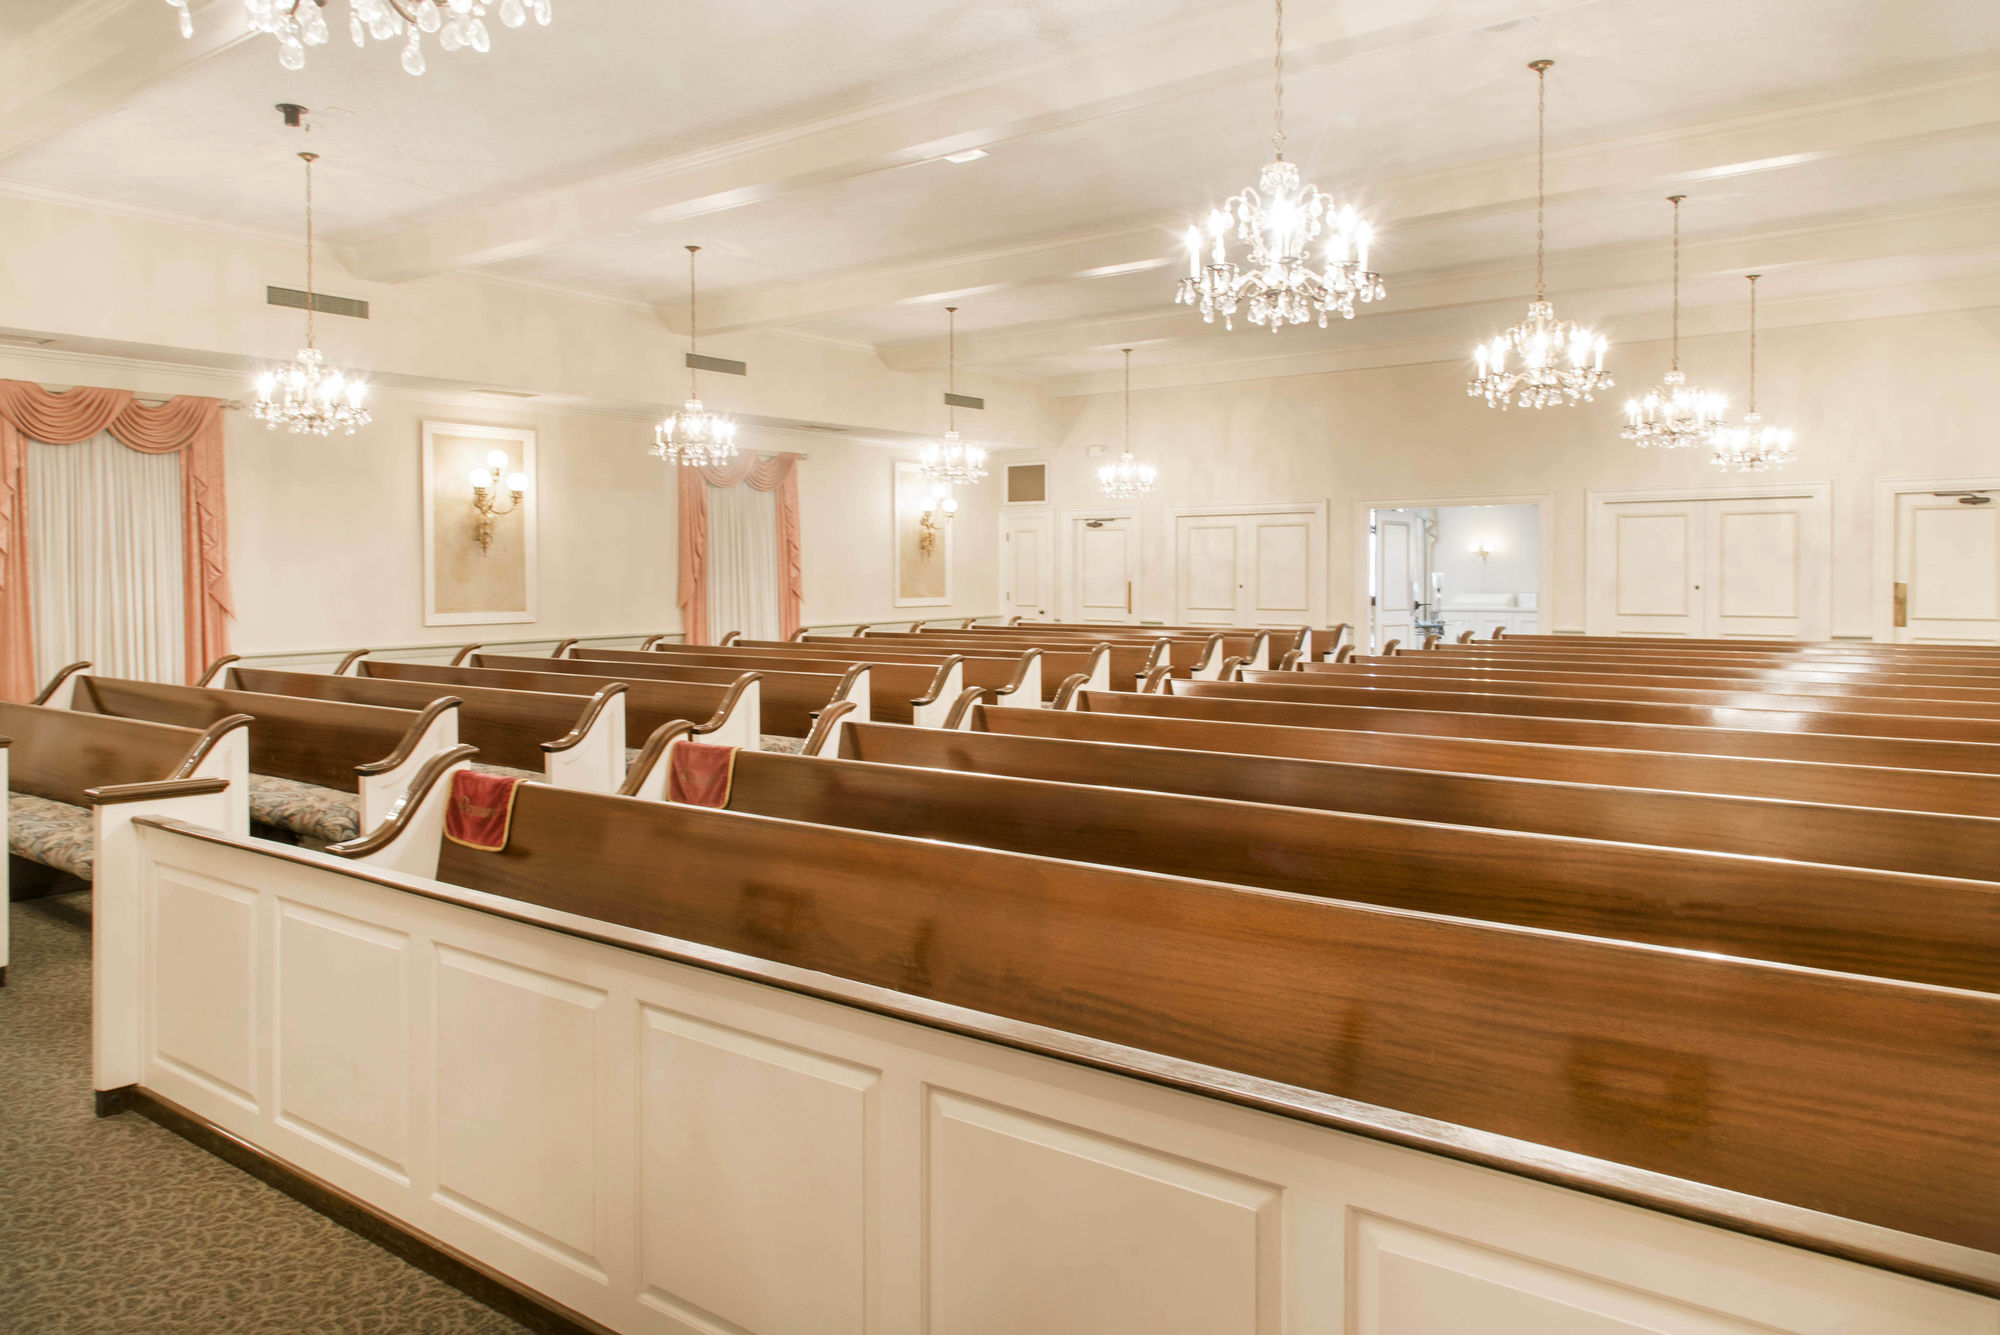 Chapel at Cook-Walden Funeral Home